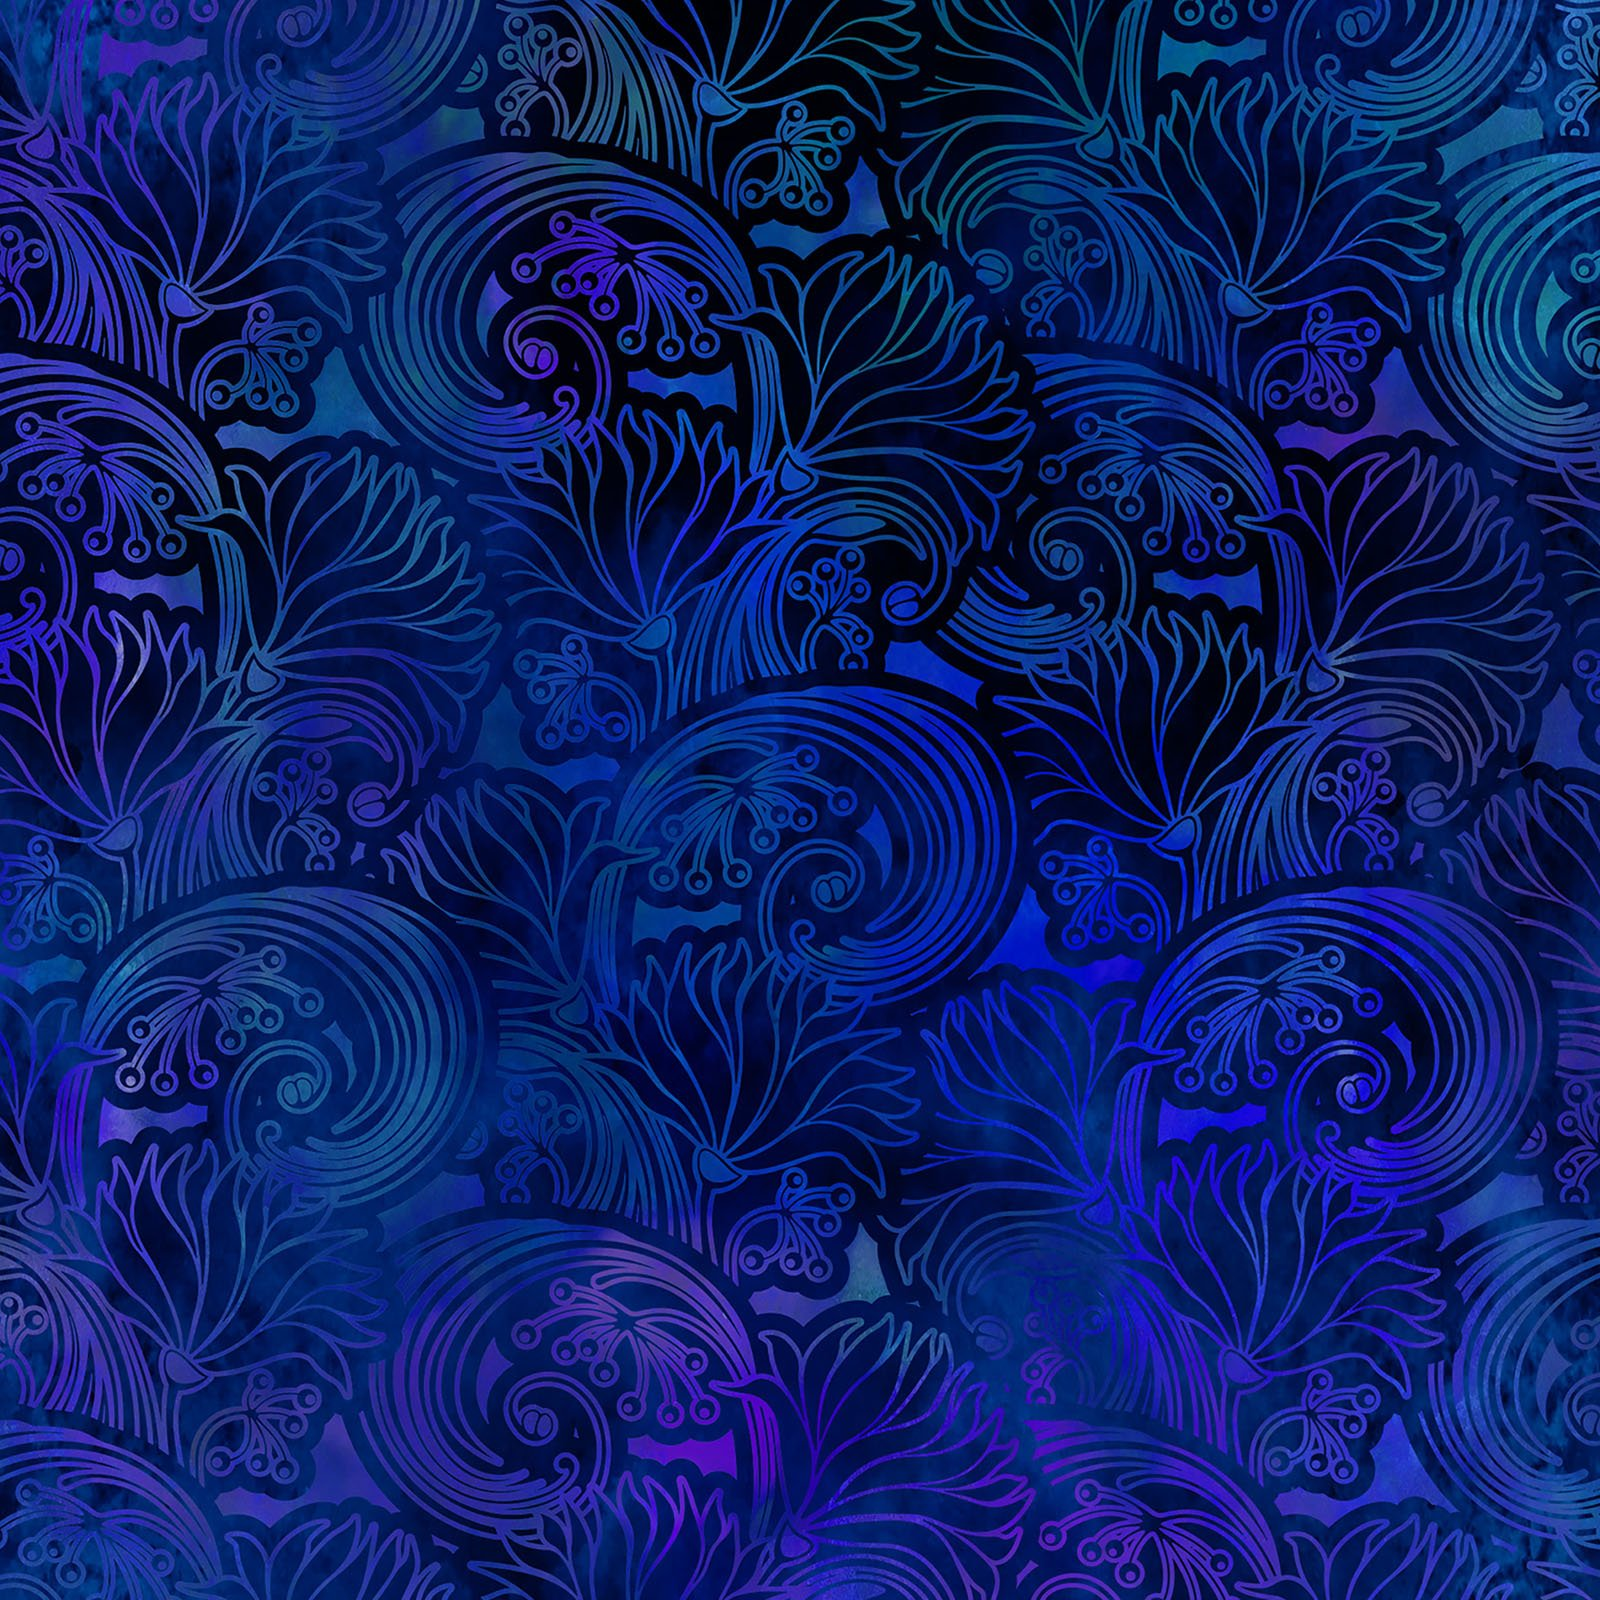 INTH-6TAP 2 - TAPESTRY BY JASON YENTER SWIRL BLUE- Delivery September 2020